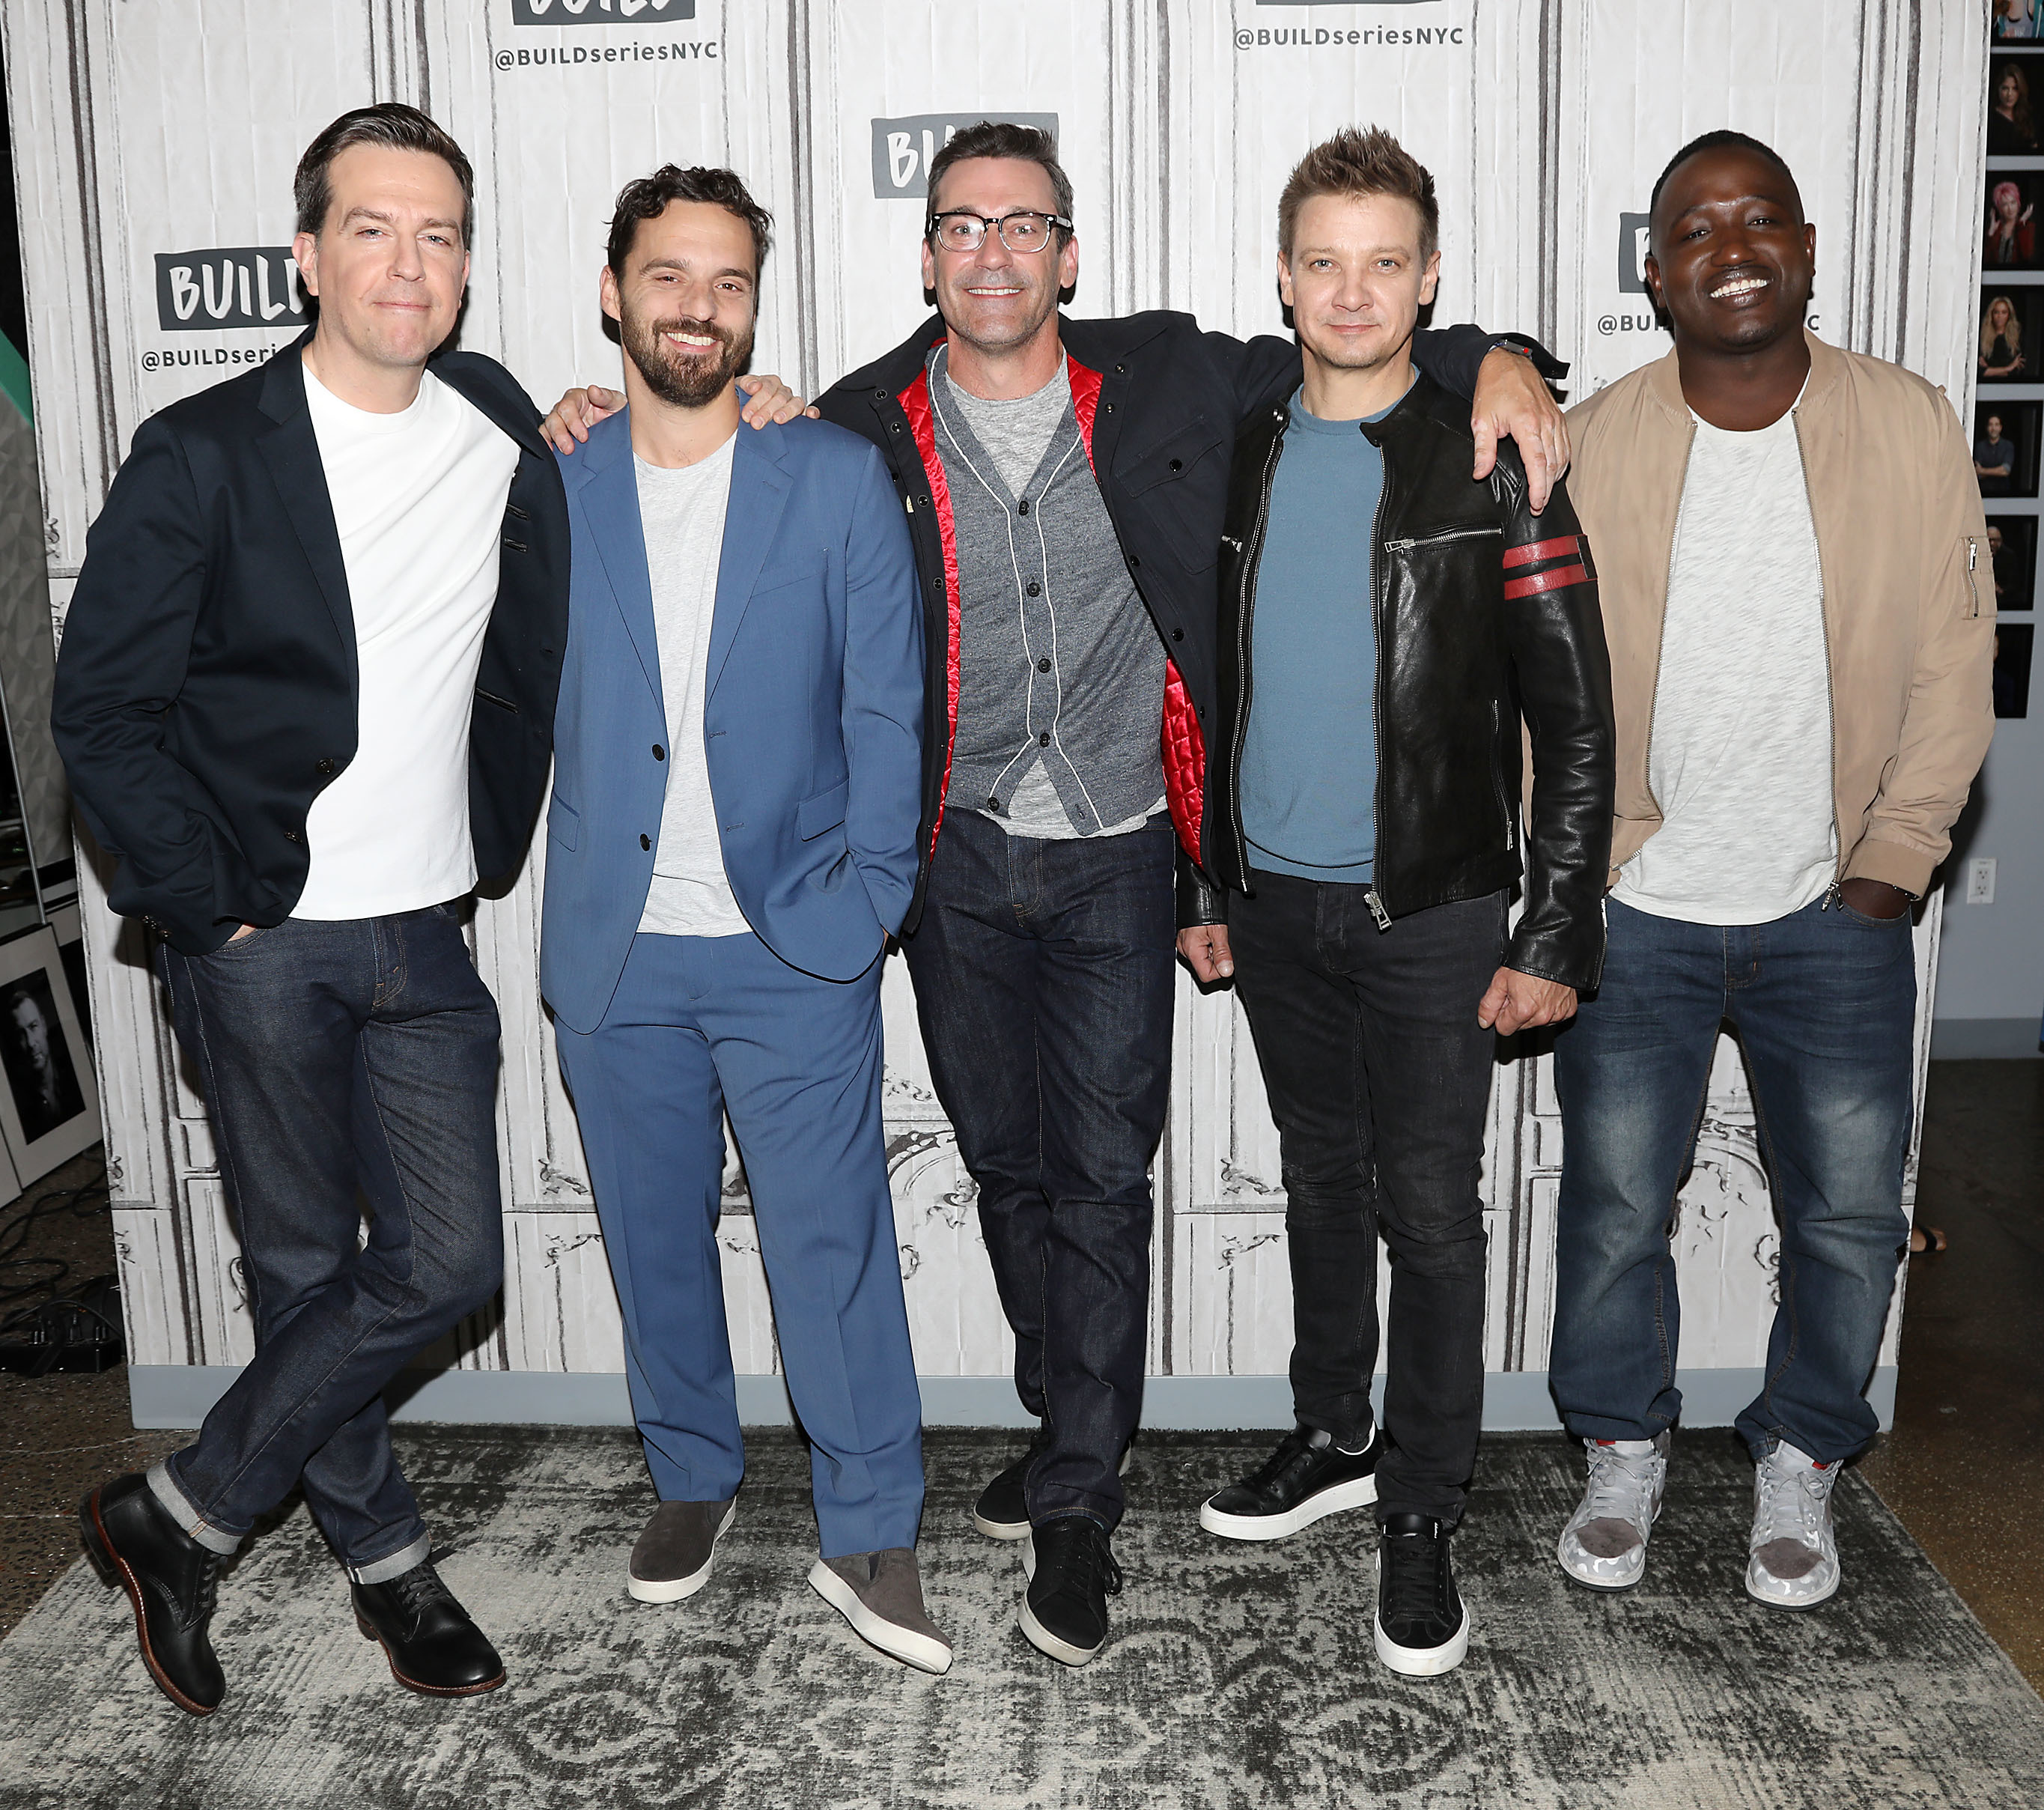 "The Stars of ""TAG"" Ed Helms, Jake Johnson, Jon Hamm, Jeremy Renner and Hannibal Buress visit the BUILD Speaker Series in New York City on June 12, 2018."